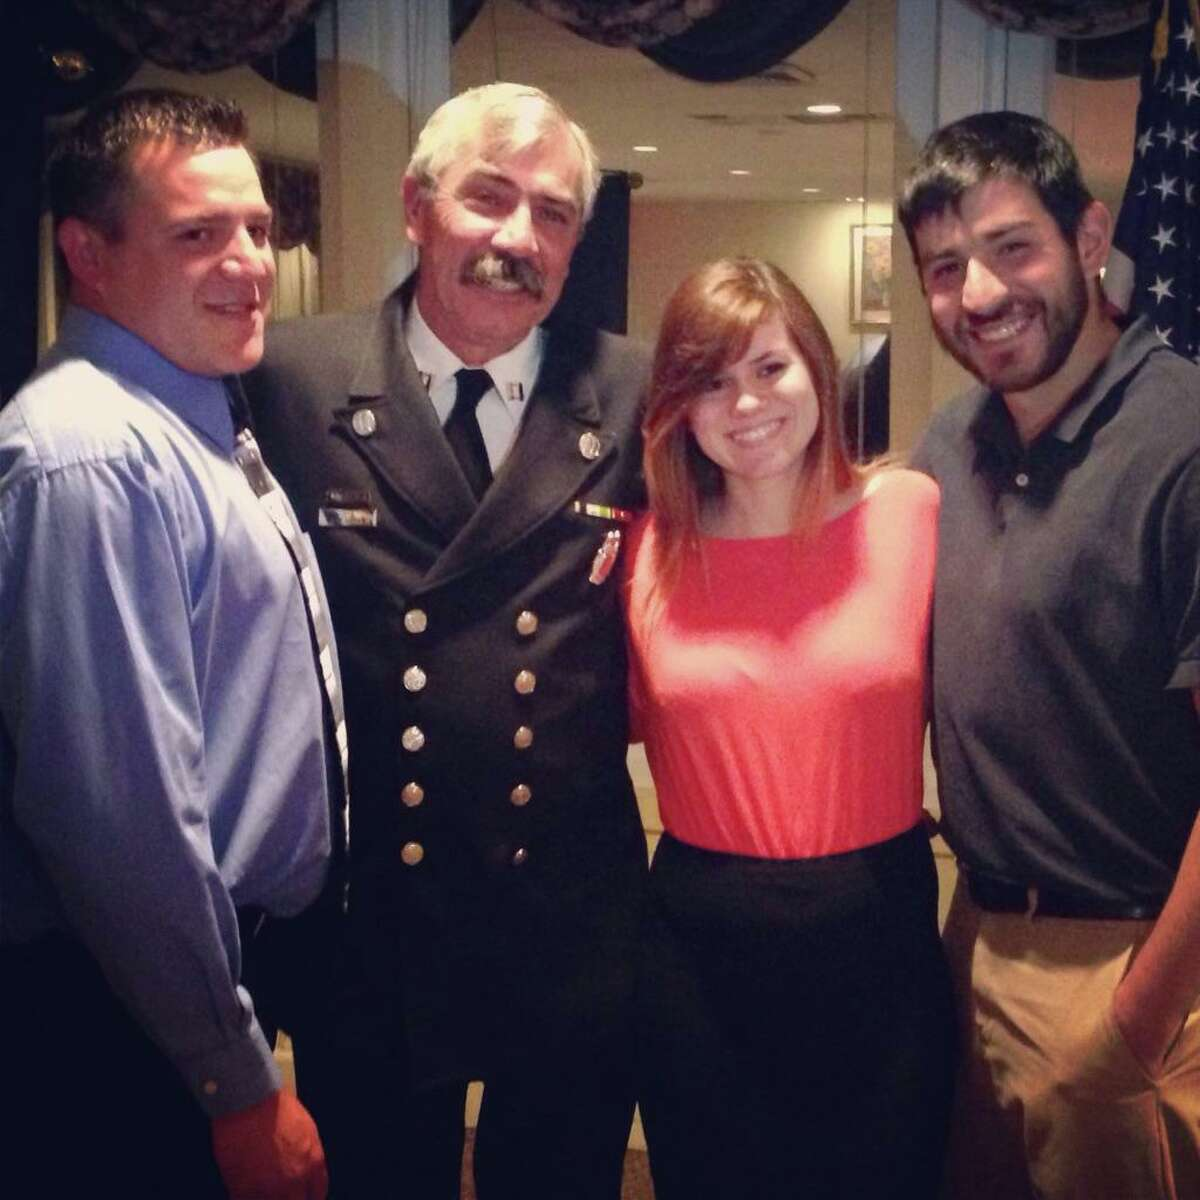 Former Danbury Fire Capt. Gary Arconti died on Aug. 8 at 67. From left to right: Matt Arconti, his son, Gary Arconti, Jennifer Arconti, his daughter, and Danny Arconti, his son.